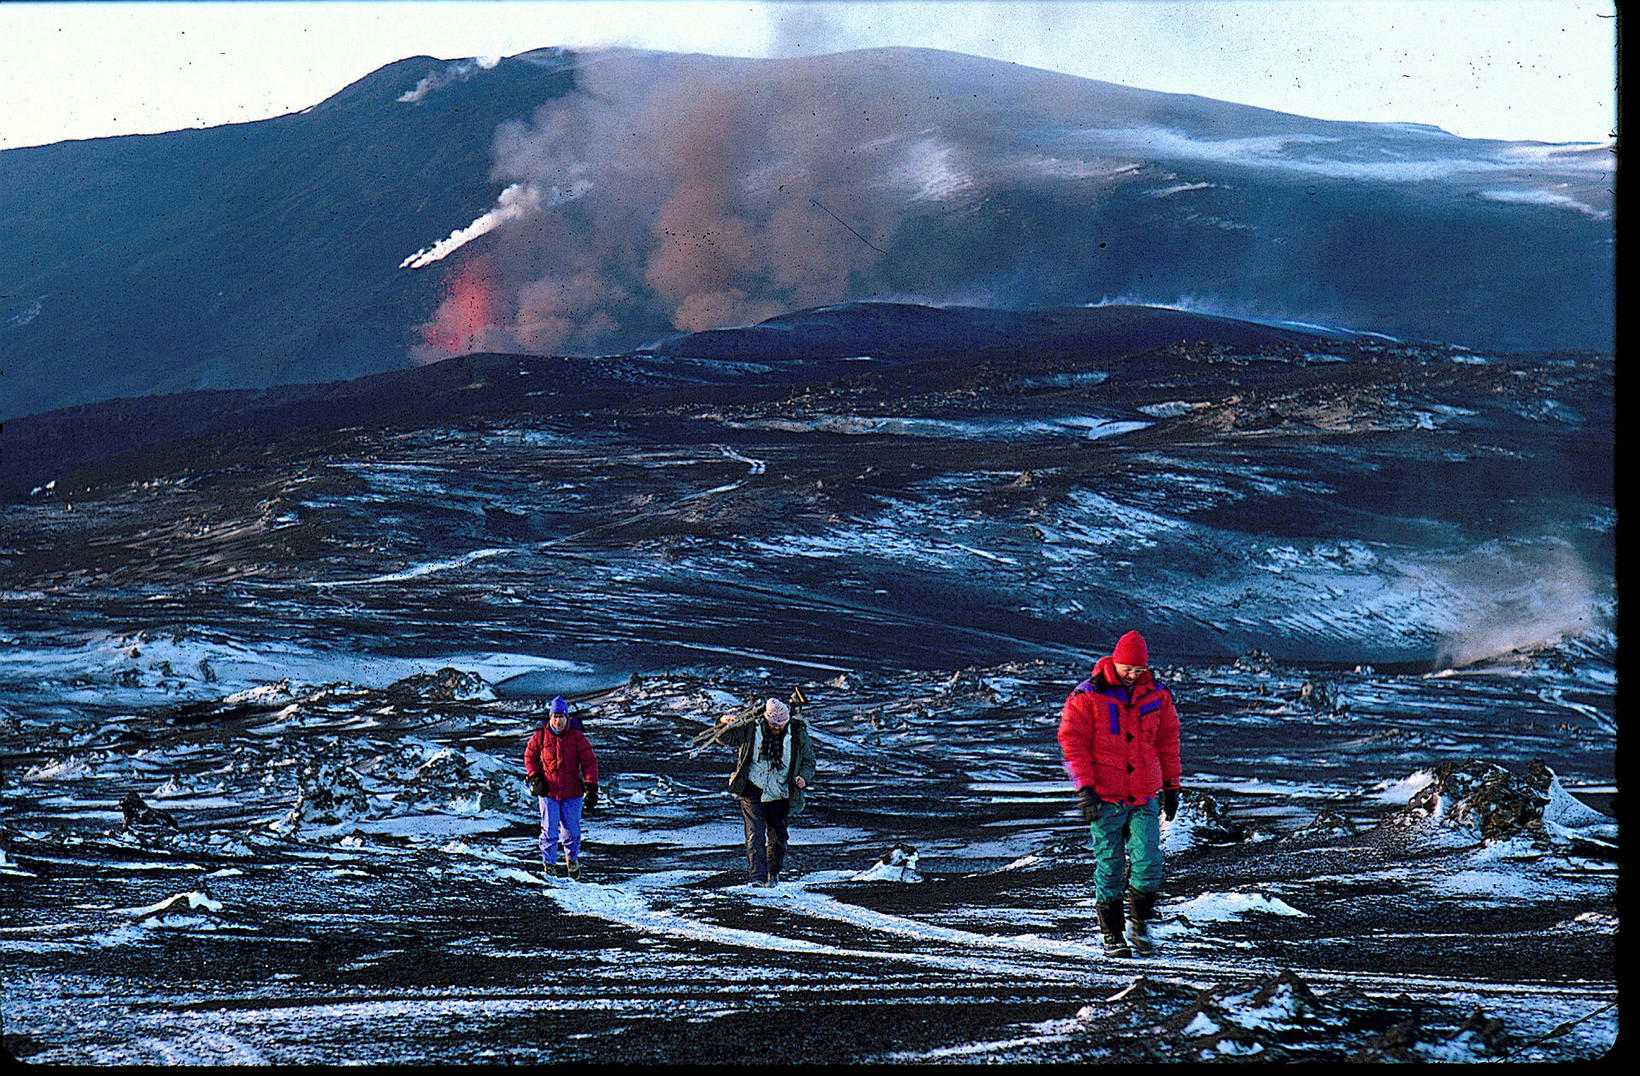 From the 1991 Hekla eruption, when lava covered an area …